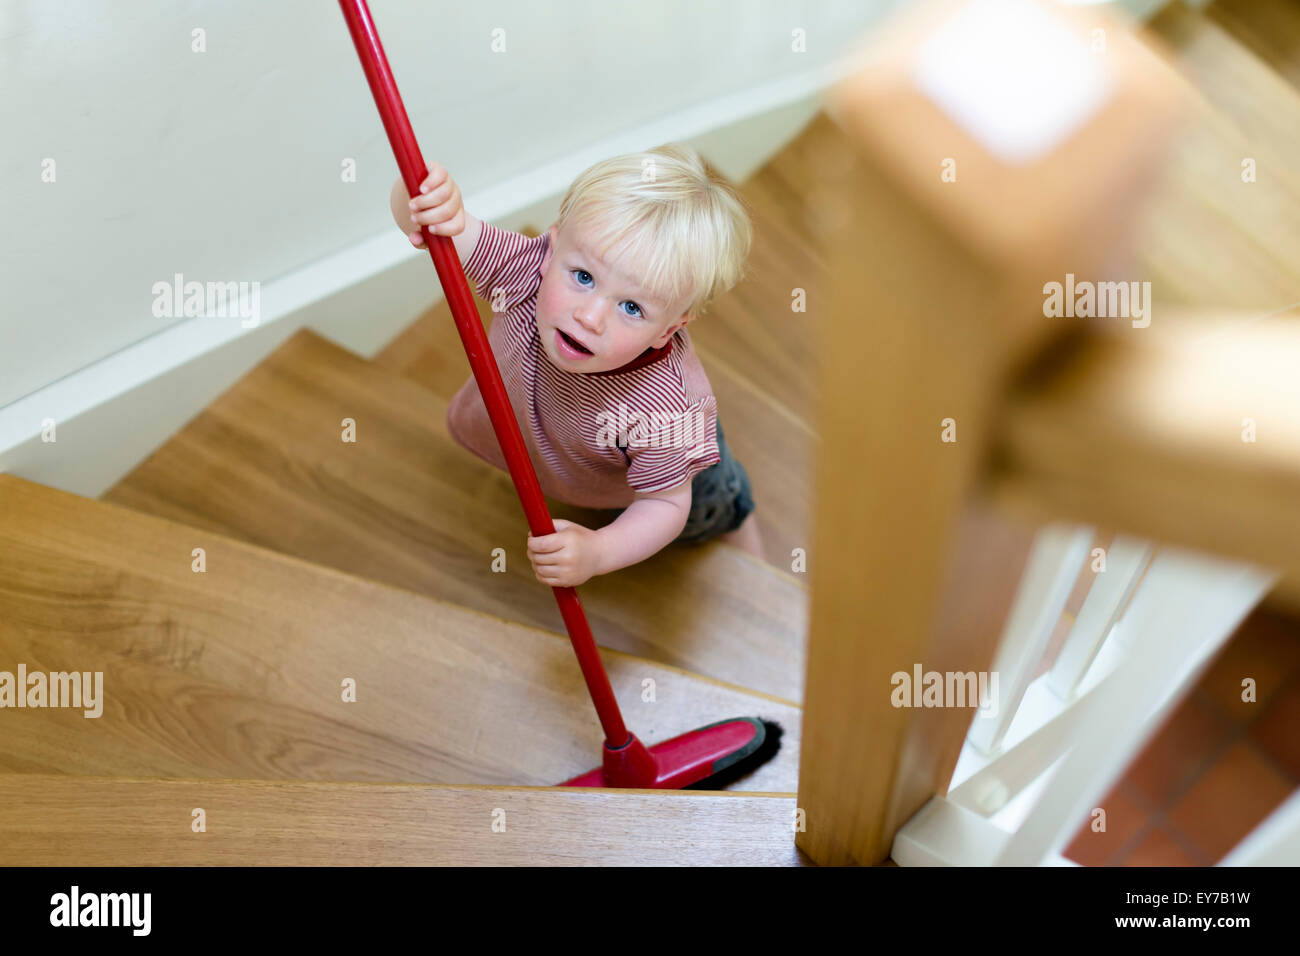 Young boy, 2 years, sweeping a staircase with a broom. - Stock Image